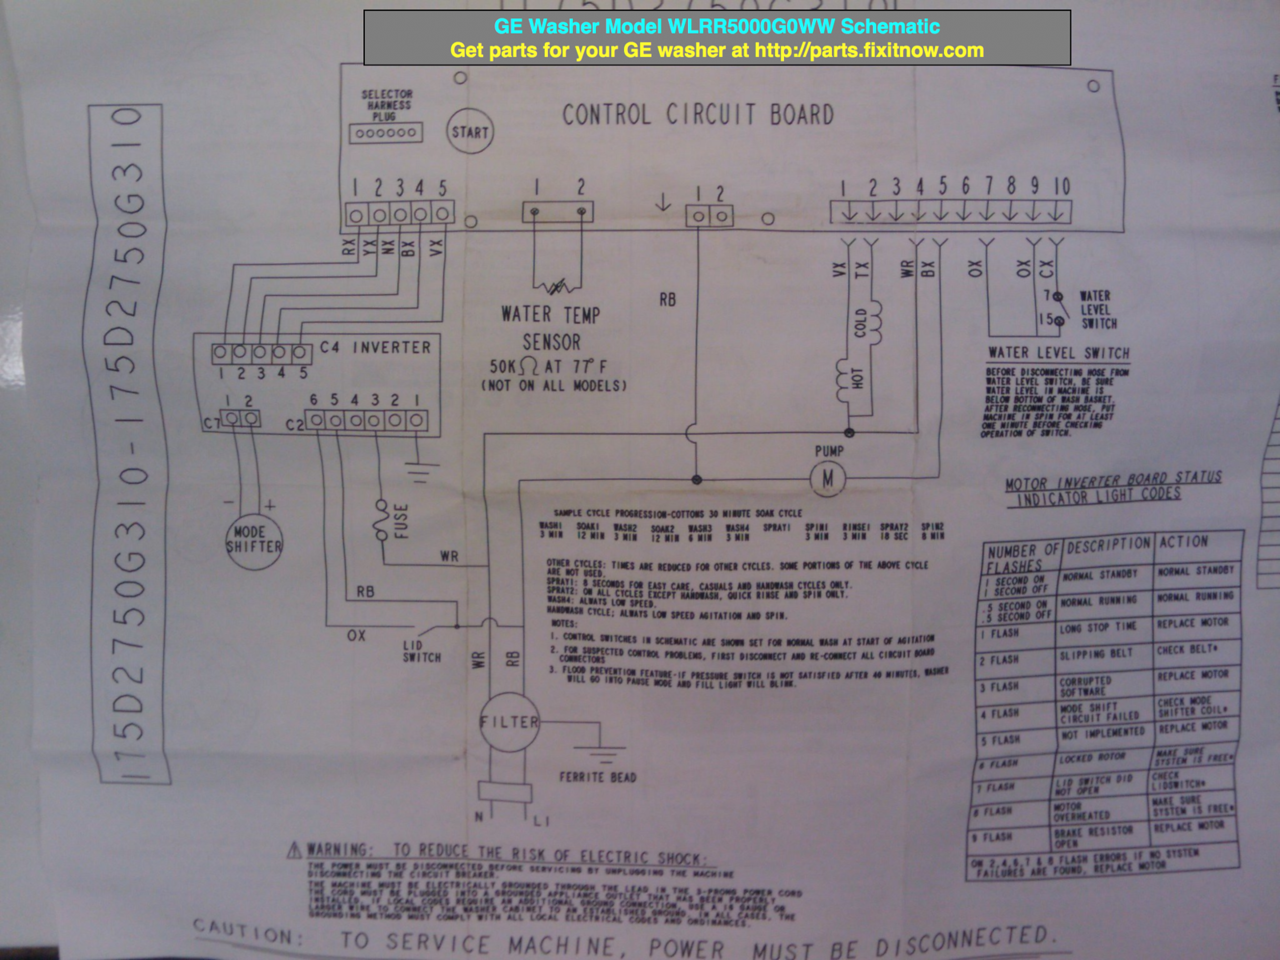 Wiring diagrams and schematics appliantology ge washer model wlrr5000g0ww schematic swarovskicordoba Gallery